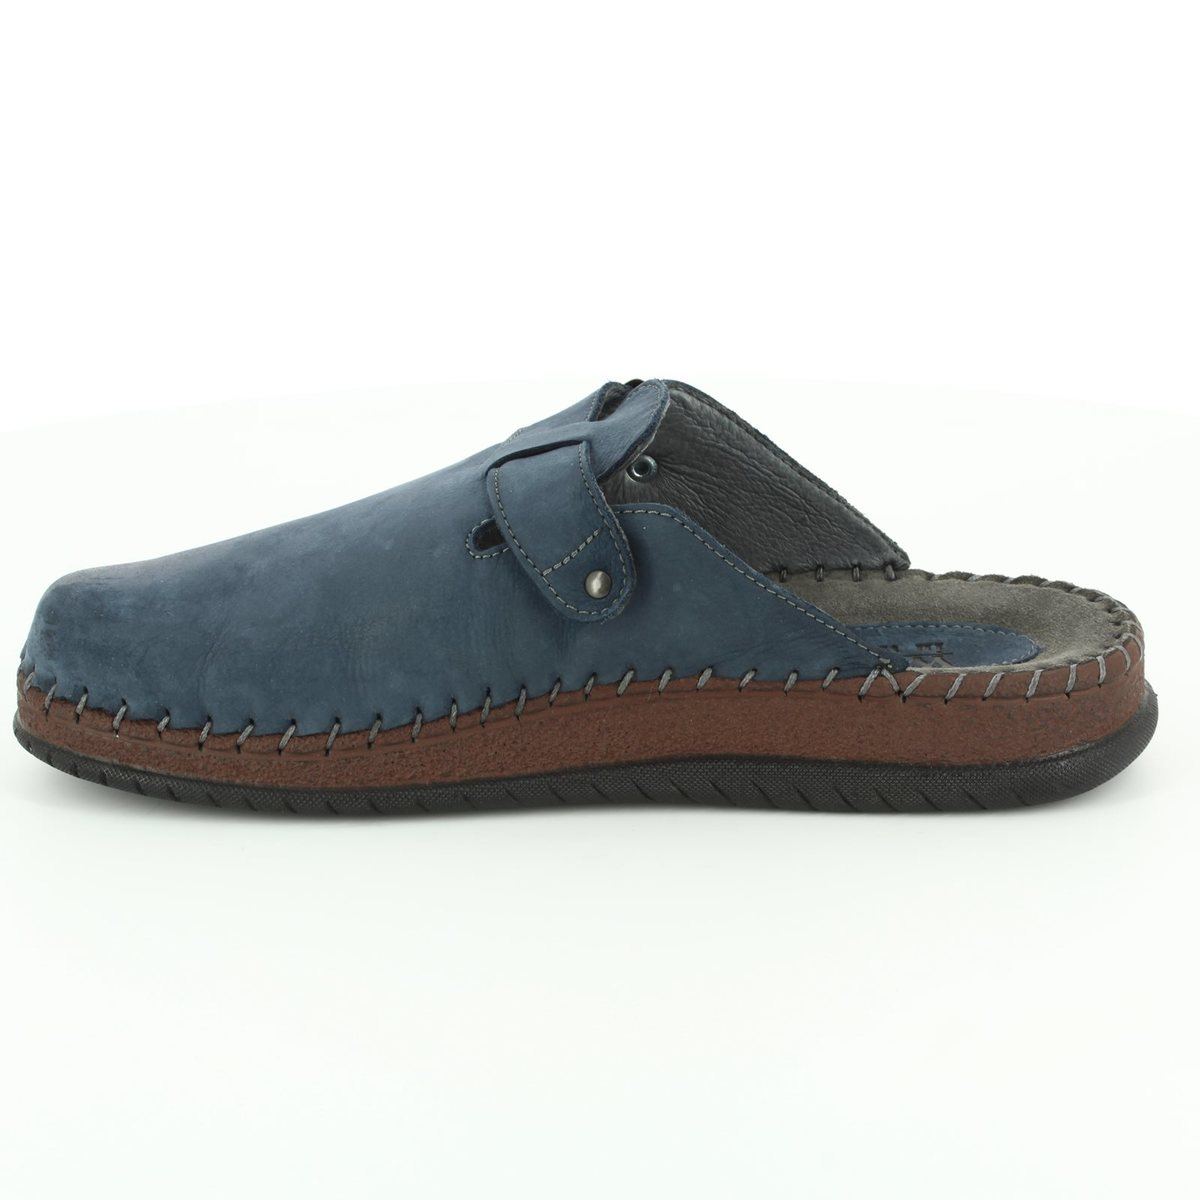 walk in the city conform 9289 19100 navy house shoe